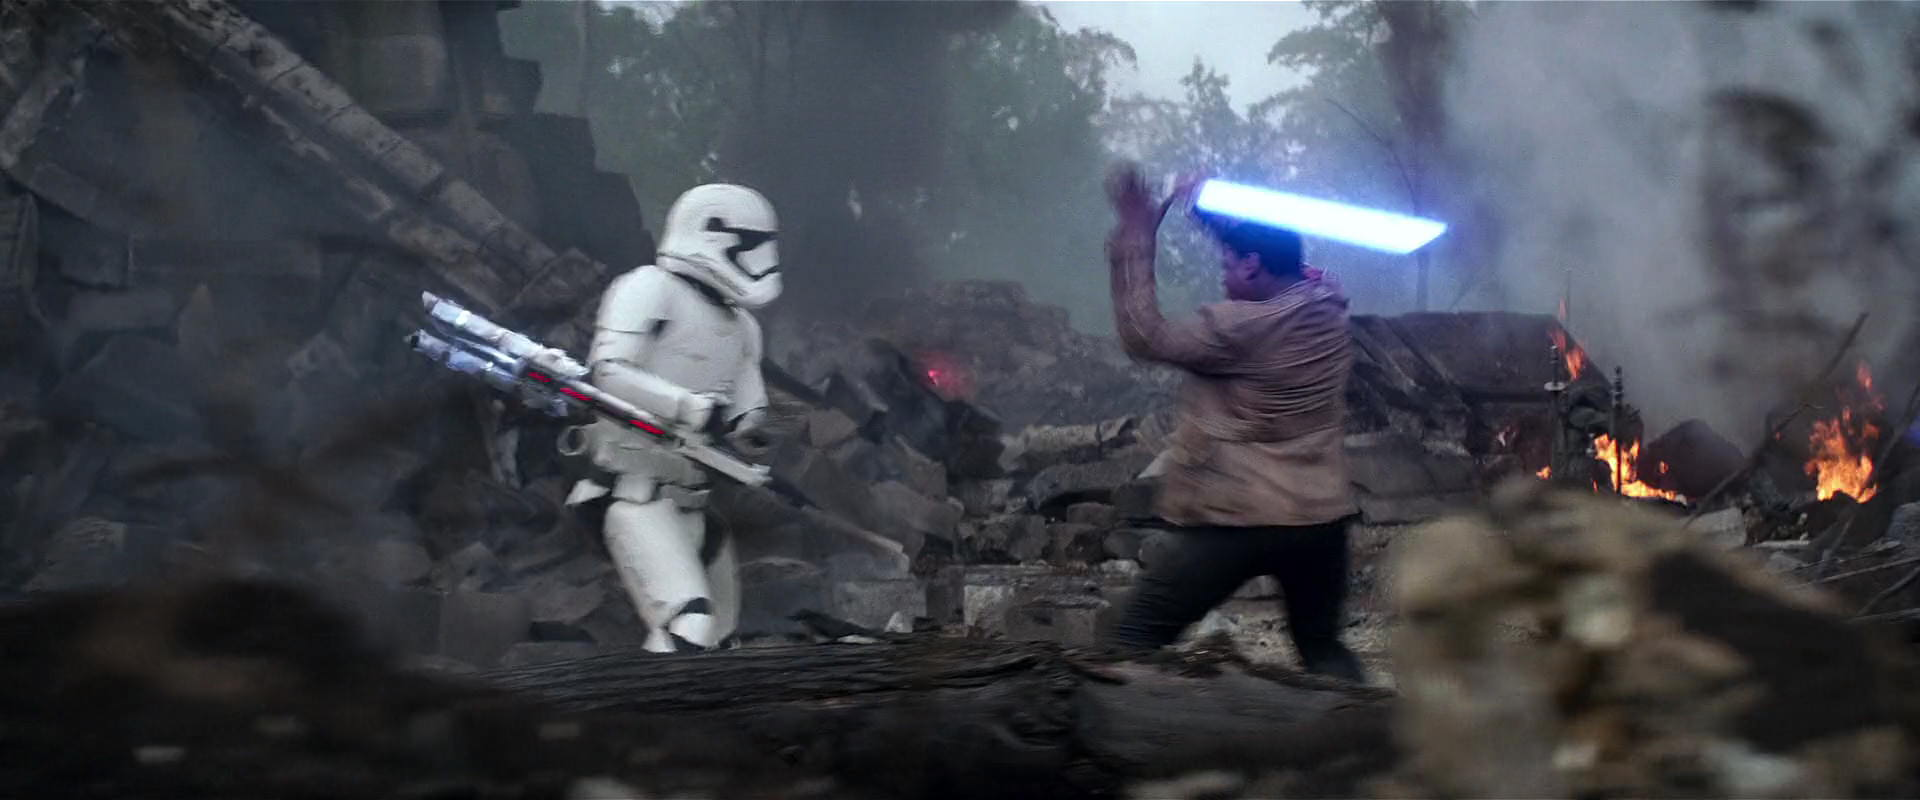 sw-force-awakens-movie-screencaps-com-8722